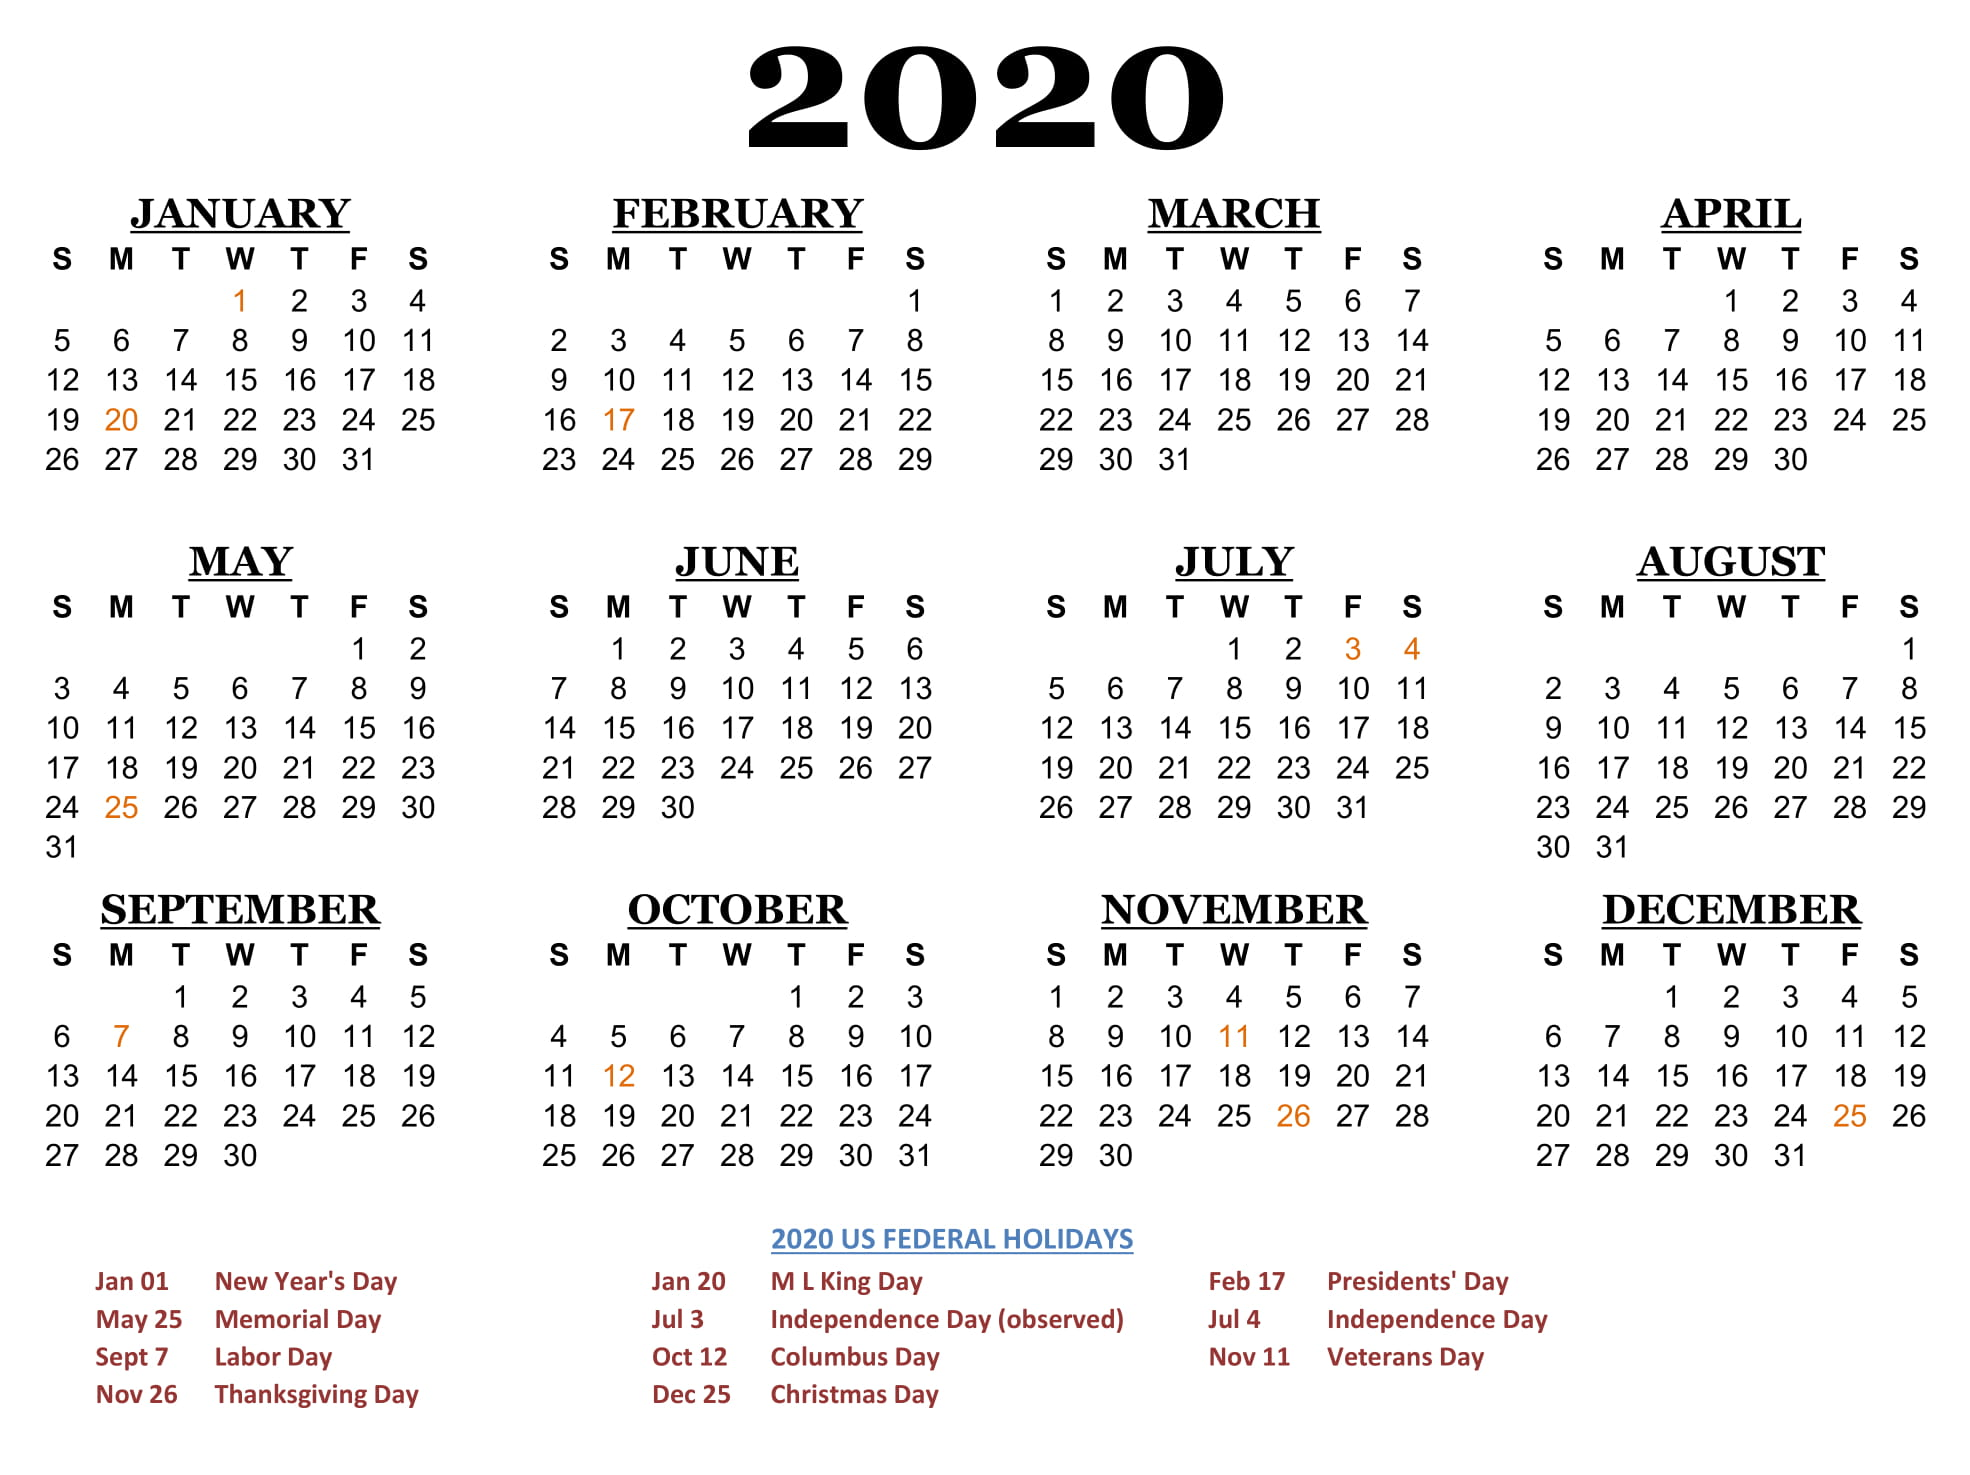 2020 Printable Yearly Calendar.Free Calendar 2020 Printable Yearly 12 Month Printable